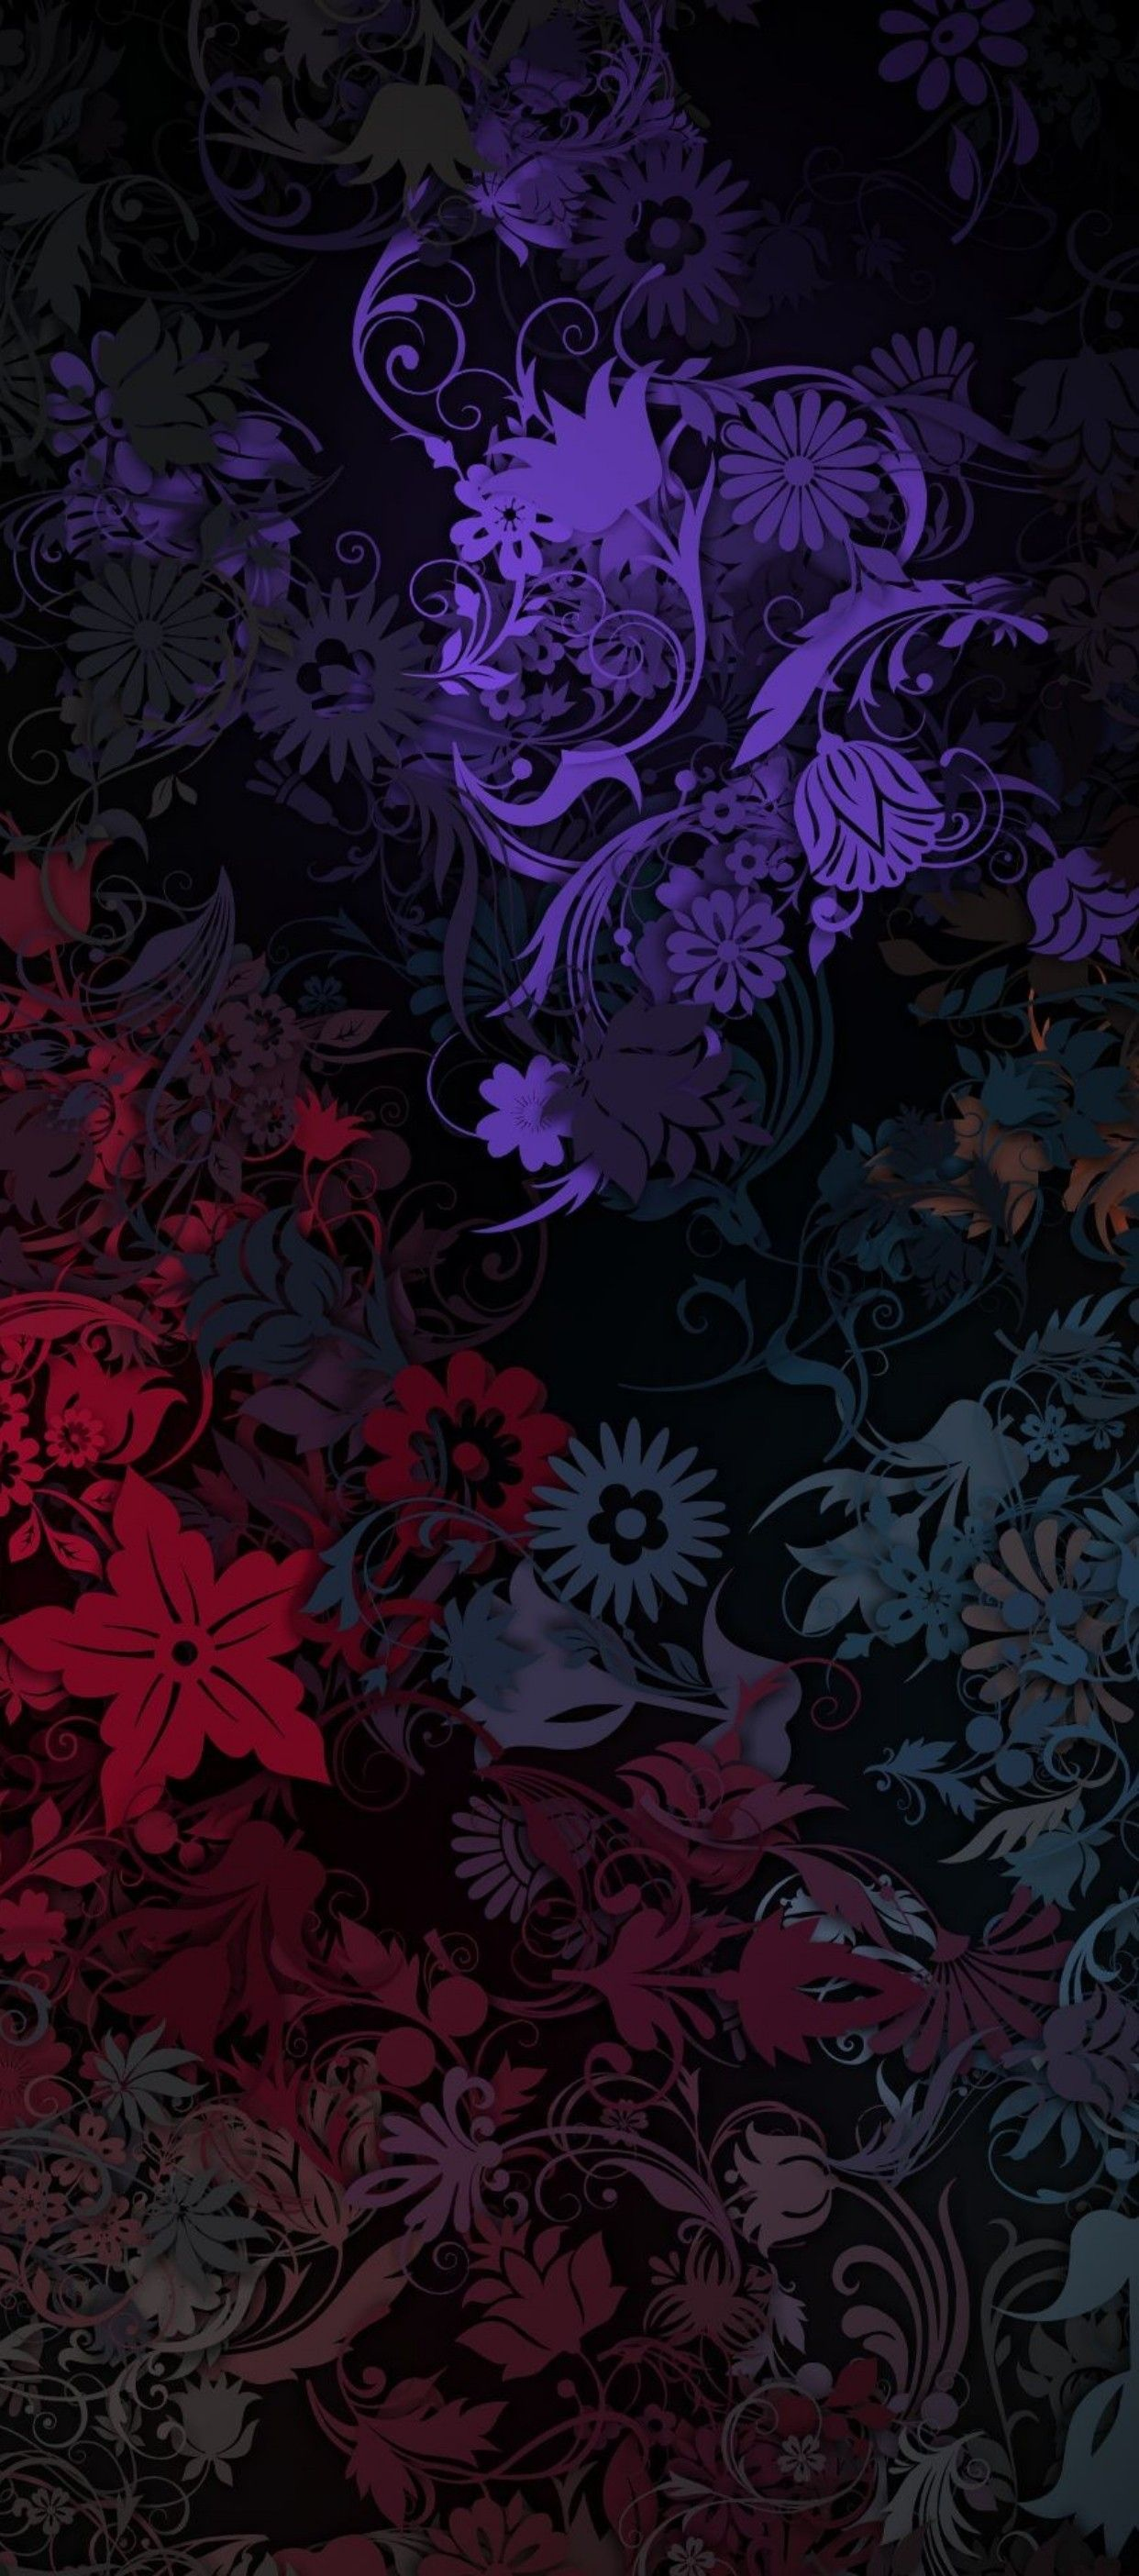 iOS 11, iPhone X, black, purple, pink, floral, simple